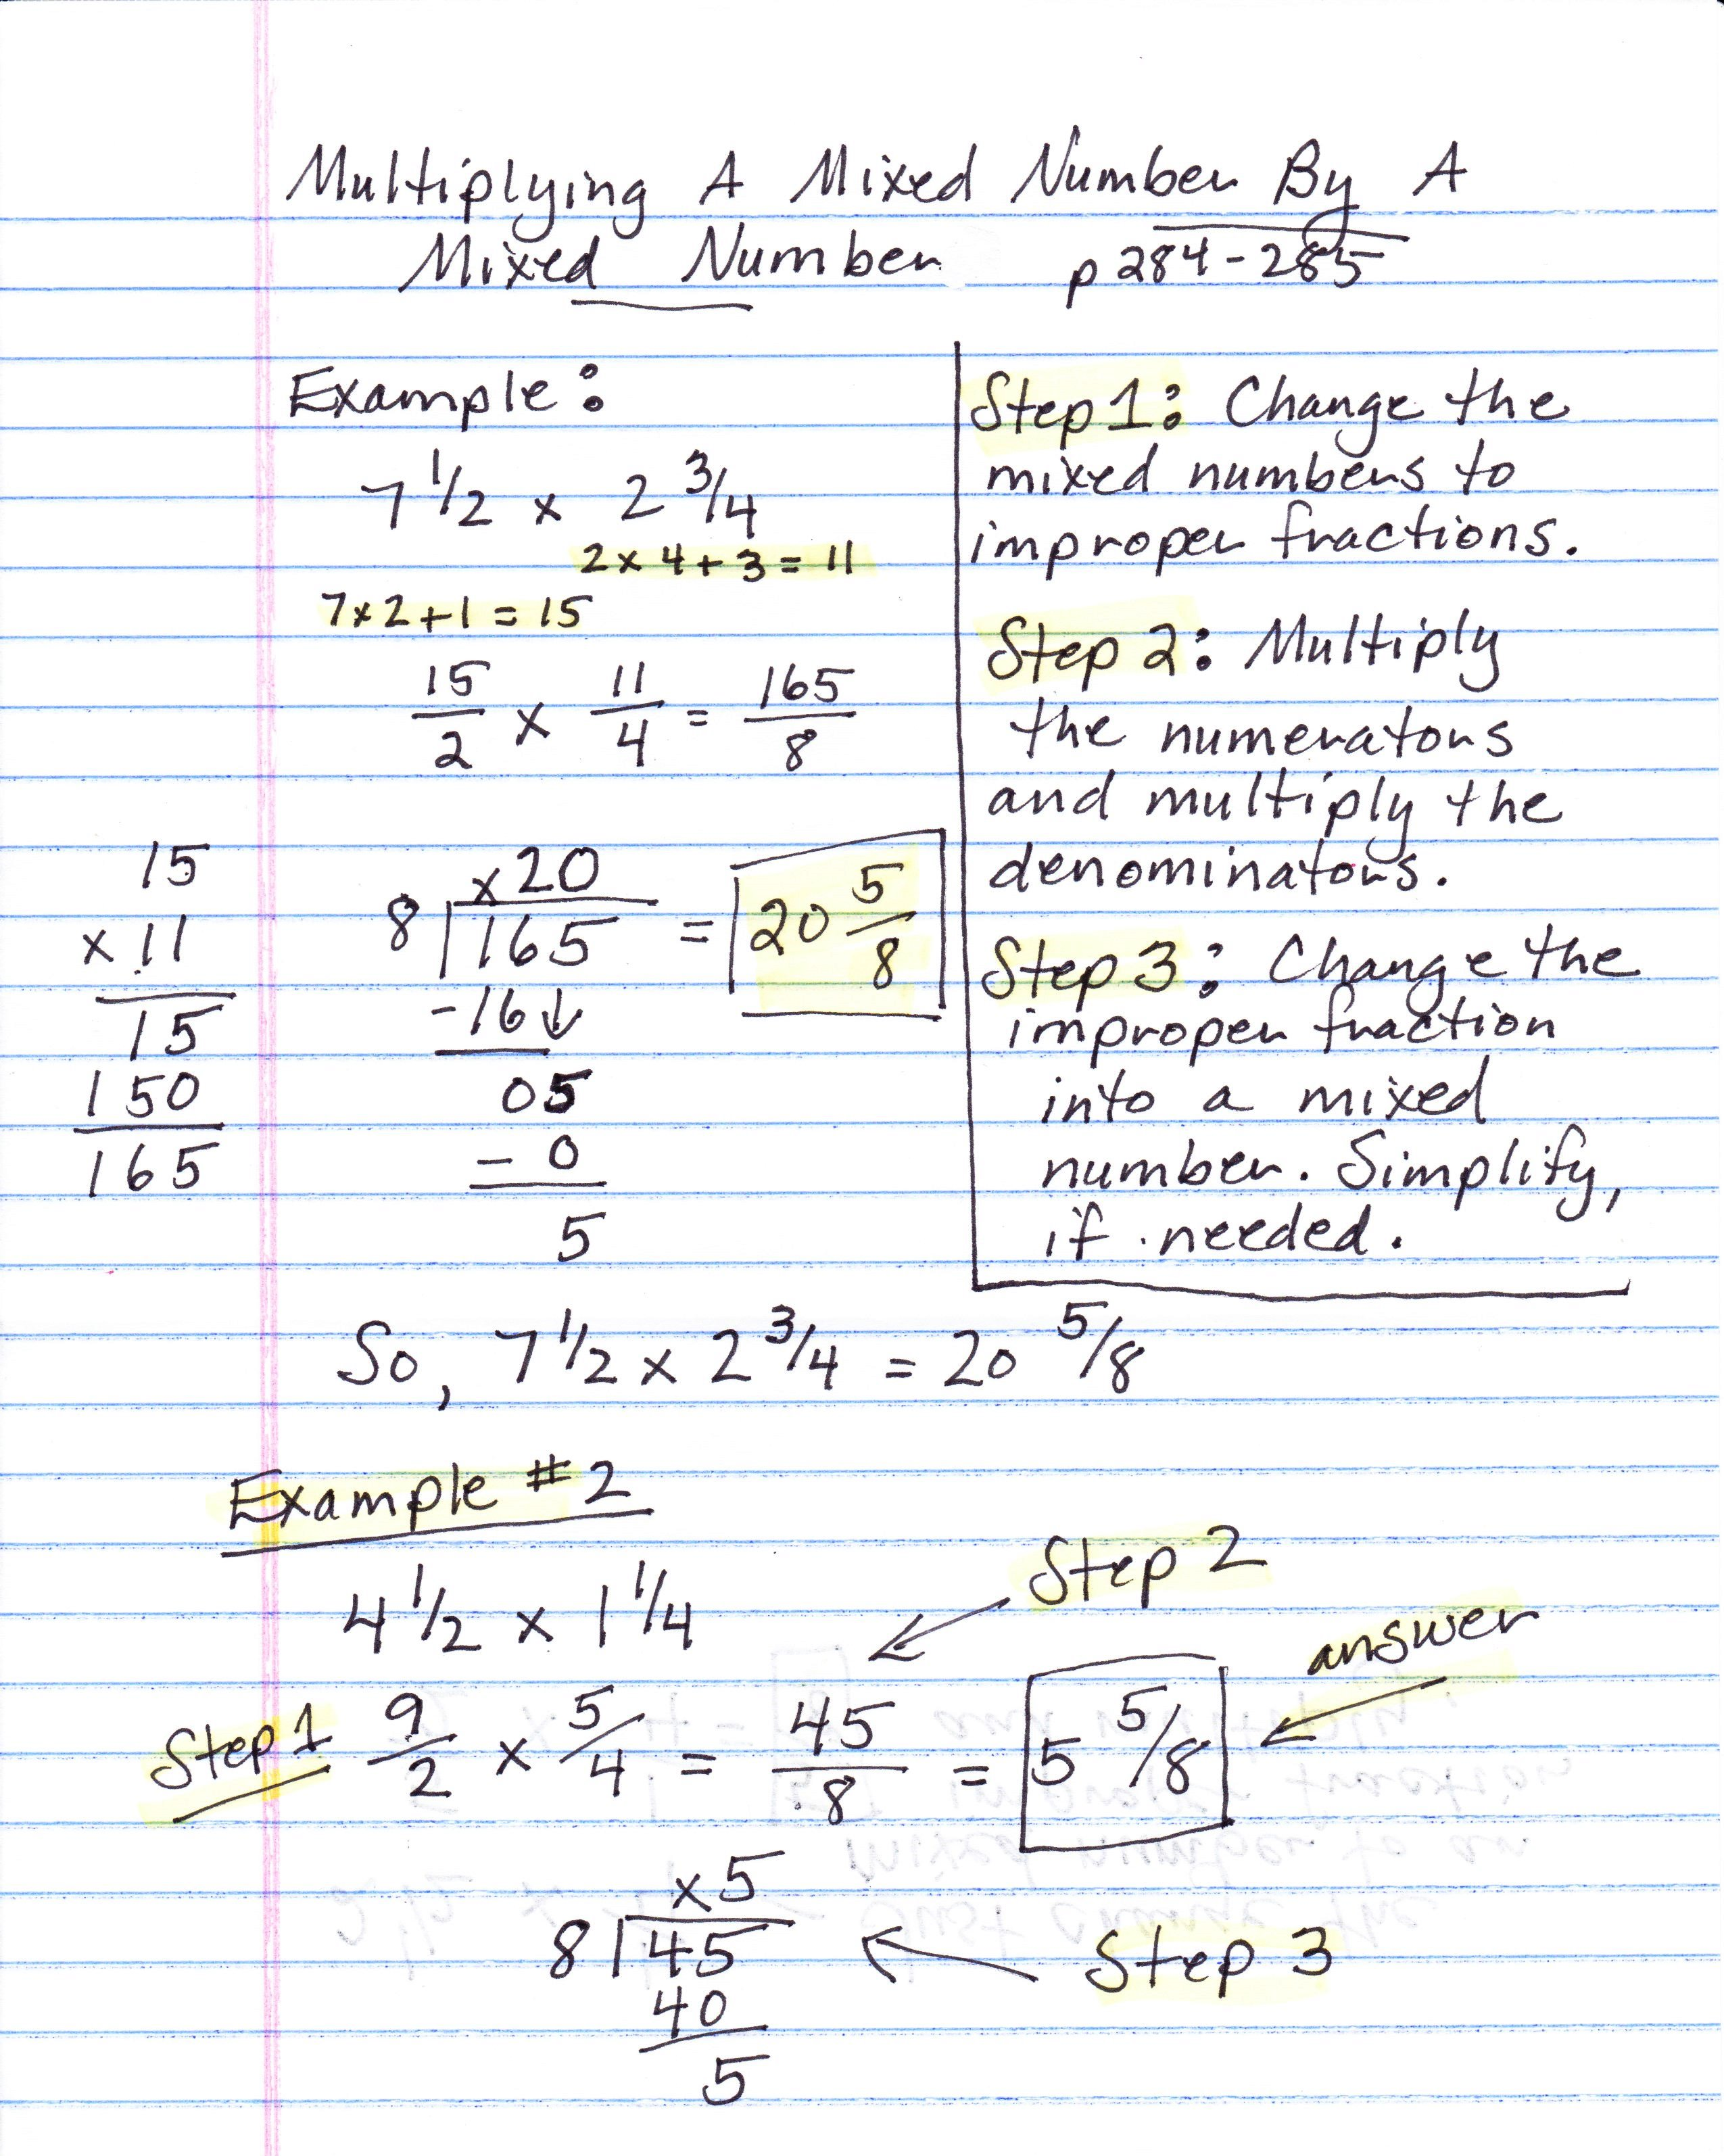 worksheet How To Multiply Mixed Numbers mabb christina m class math notes multiplying mixed numbers